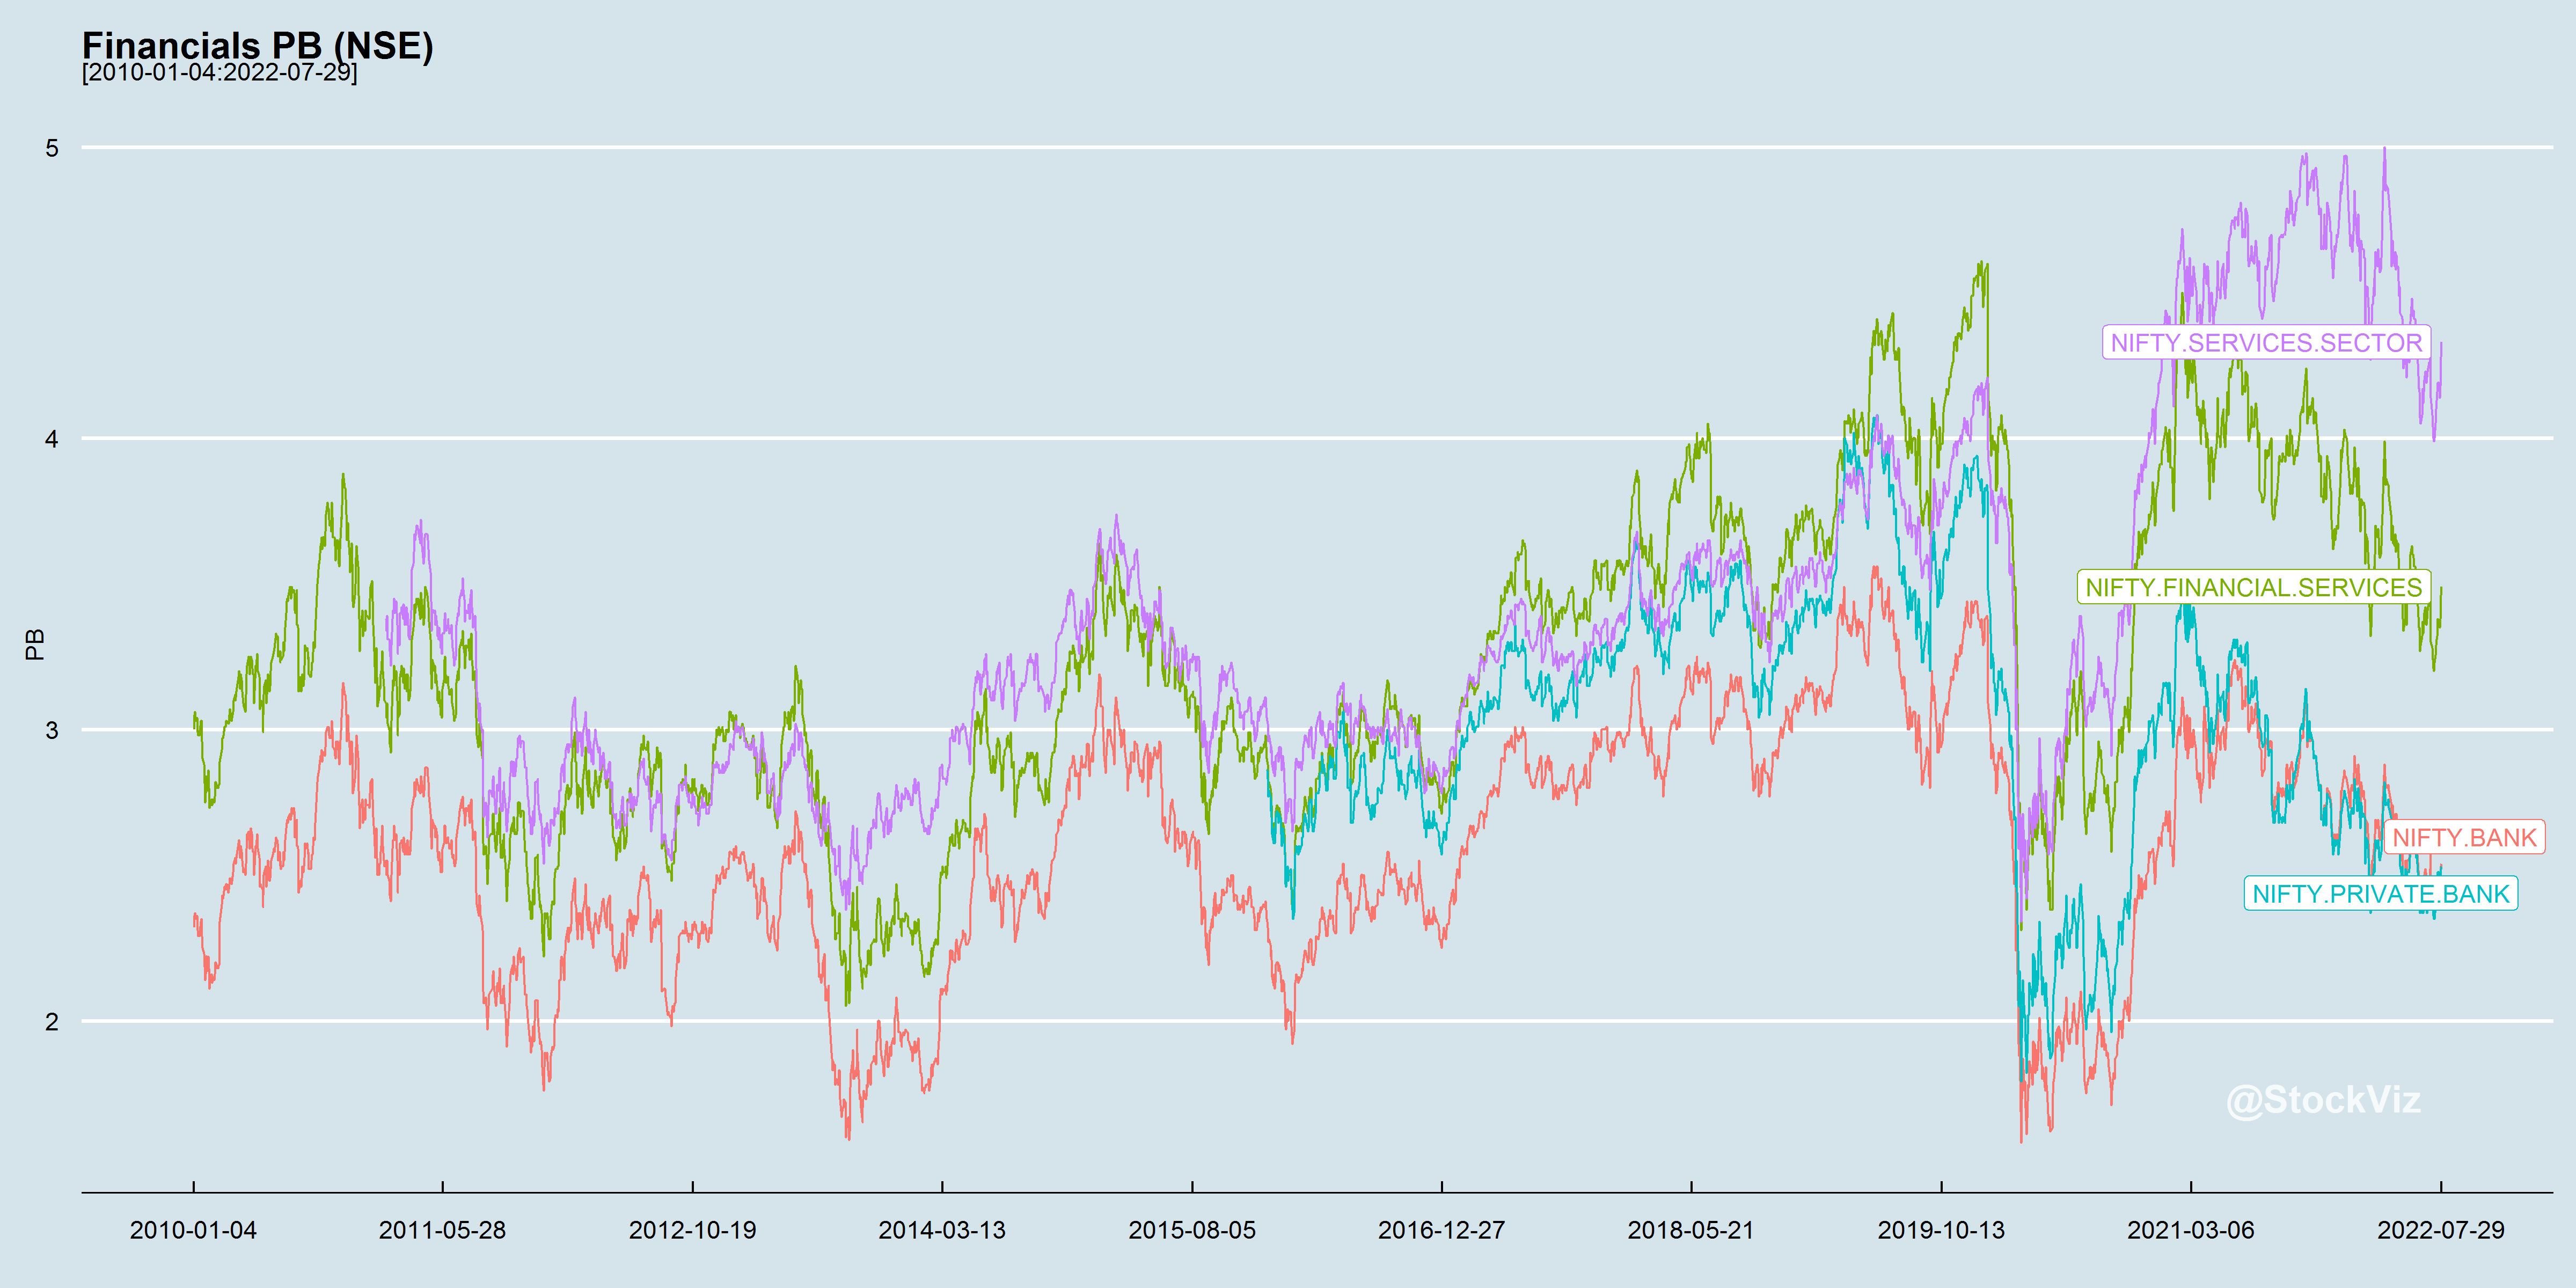 Financials PB chart